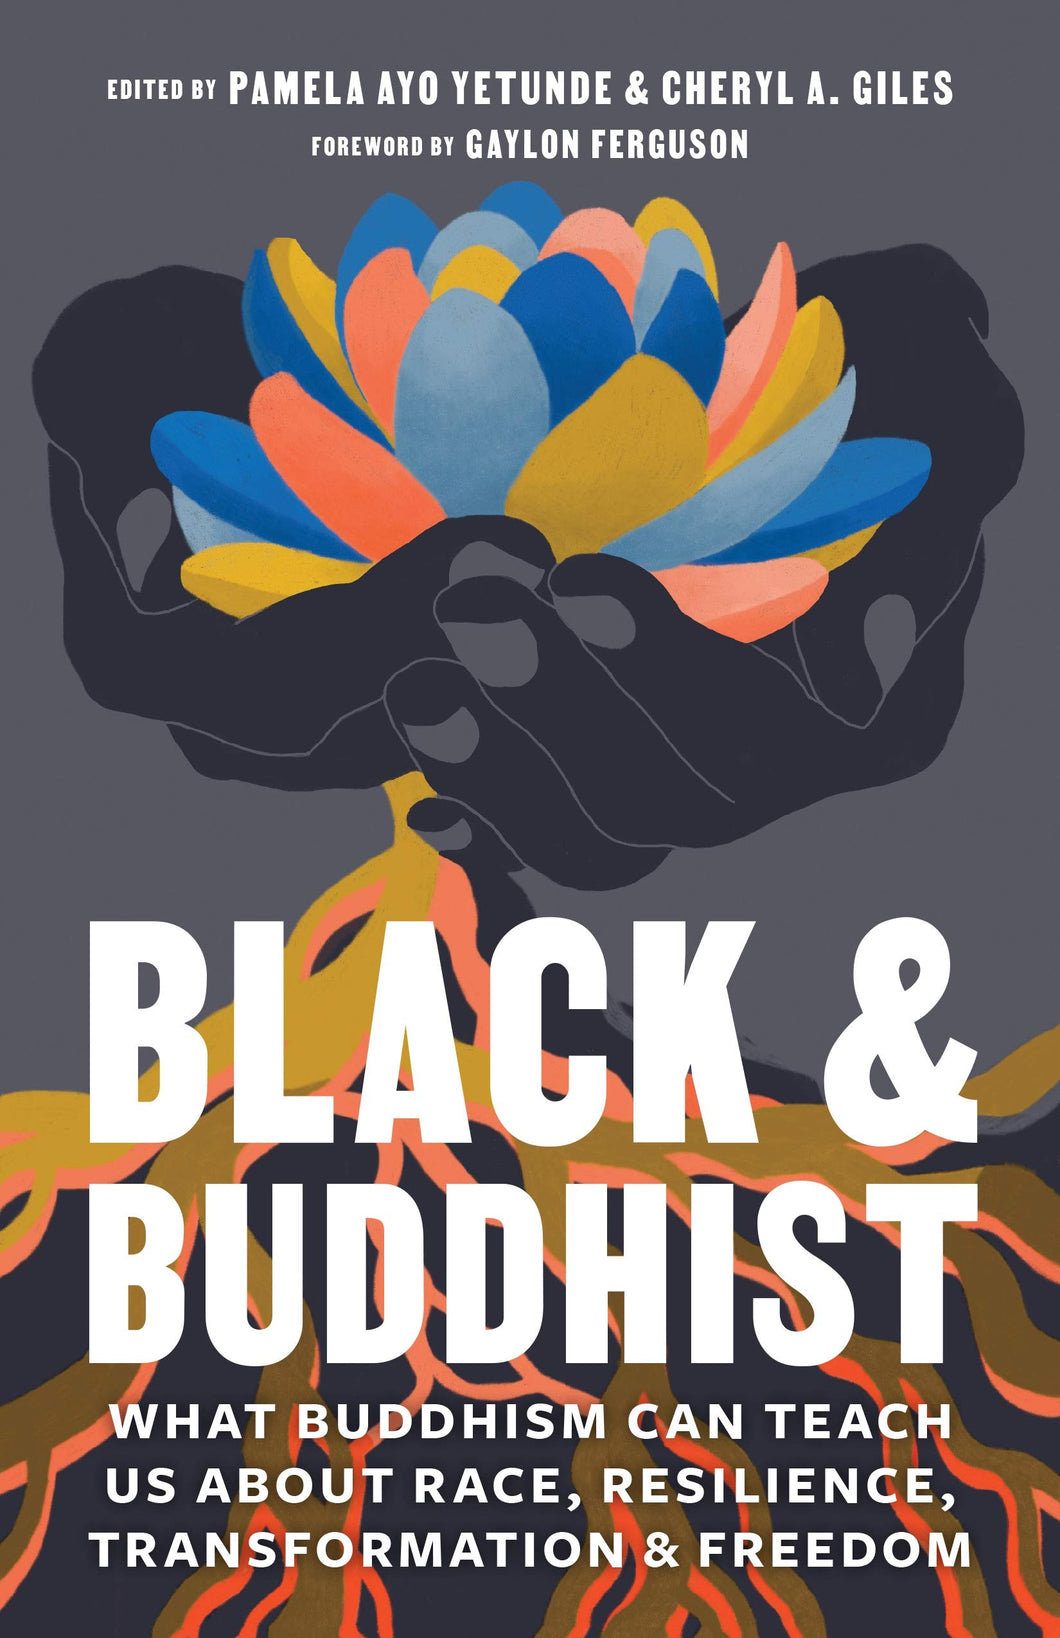 Black and Buddhist by Pamela Ayo Yetunde and Cheryl A. Giles (Pre-order, Dec 8)